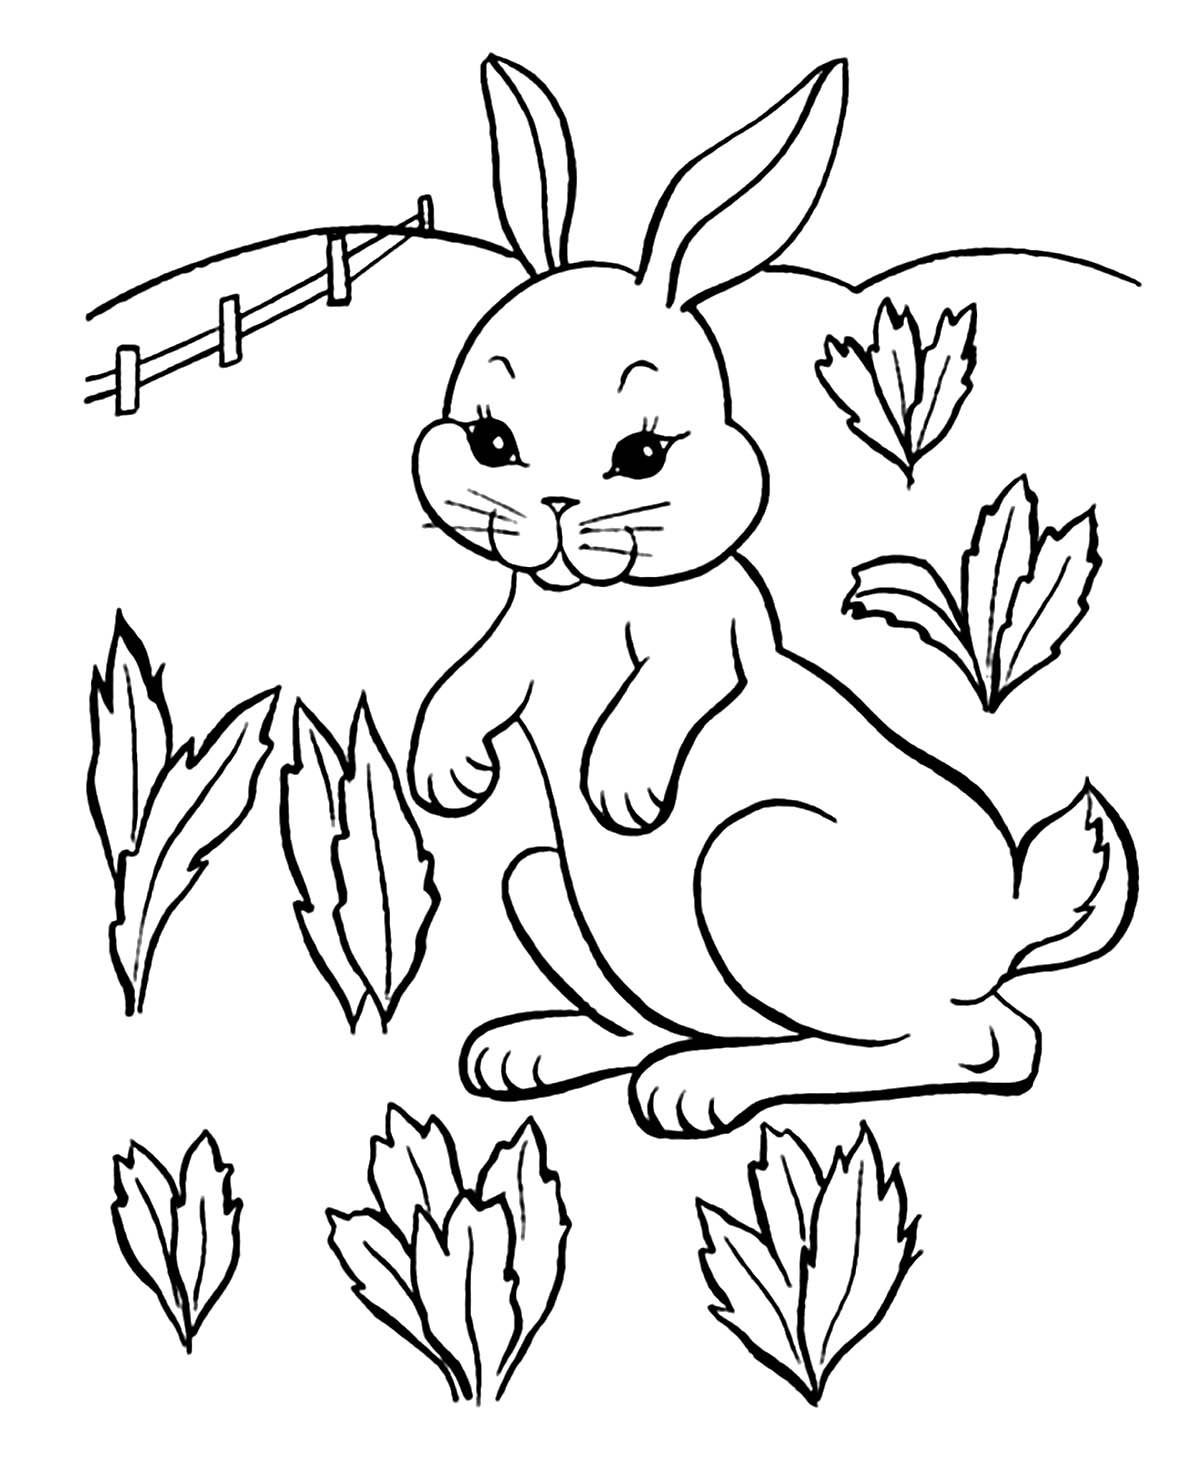 Simple Rabbit coloring page for children